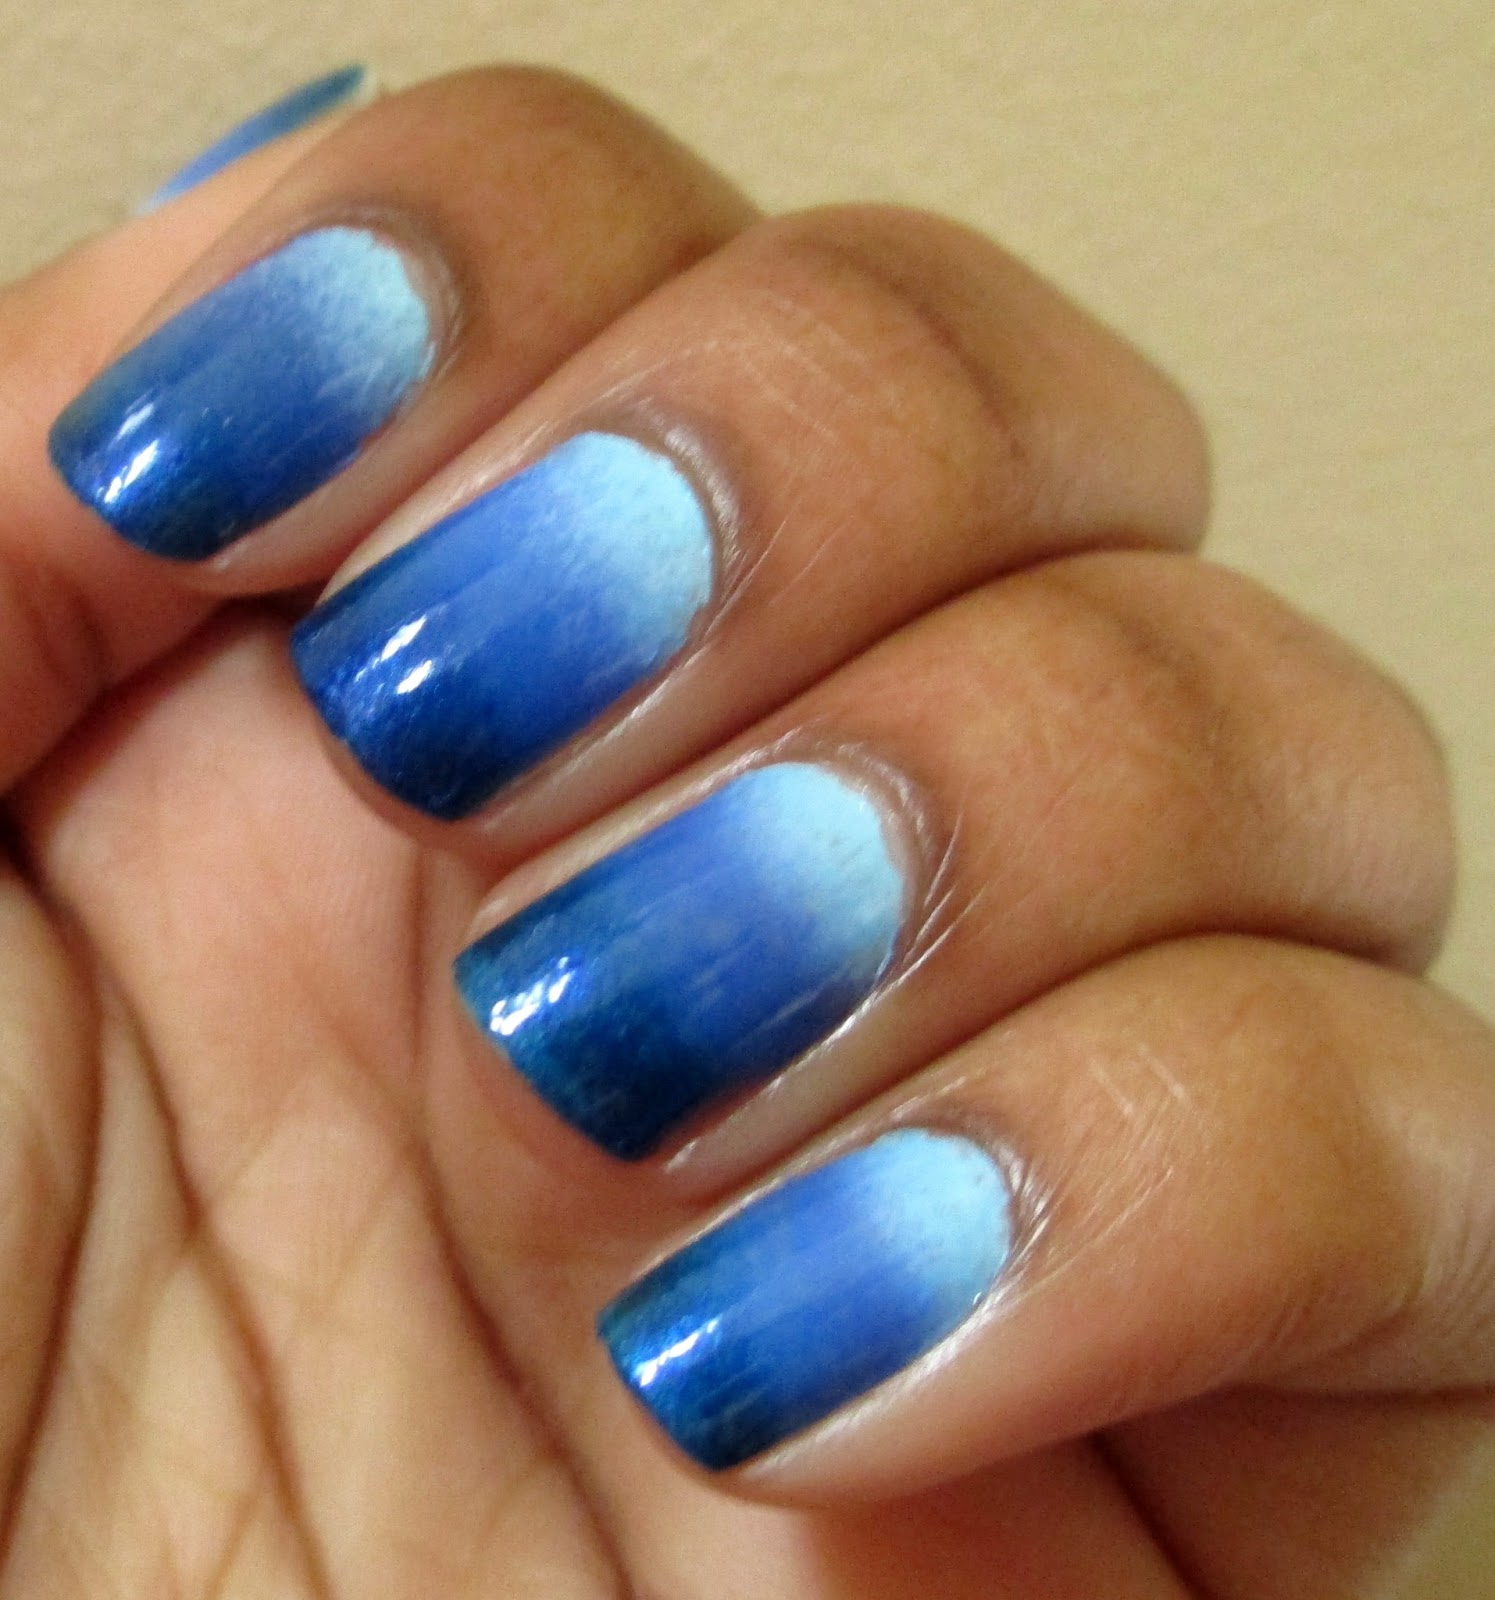 NOTD: Blue Ombre Nails